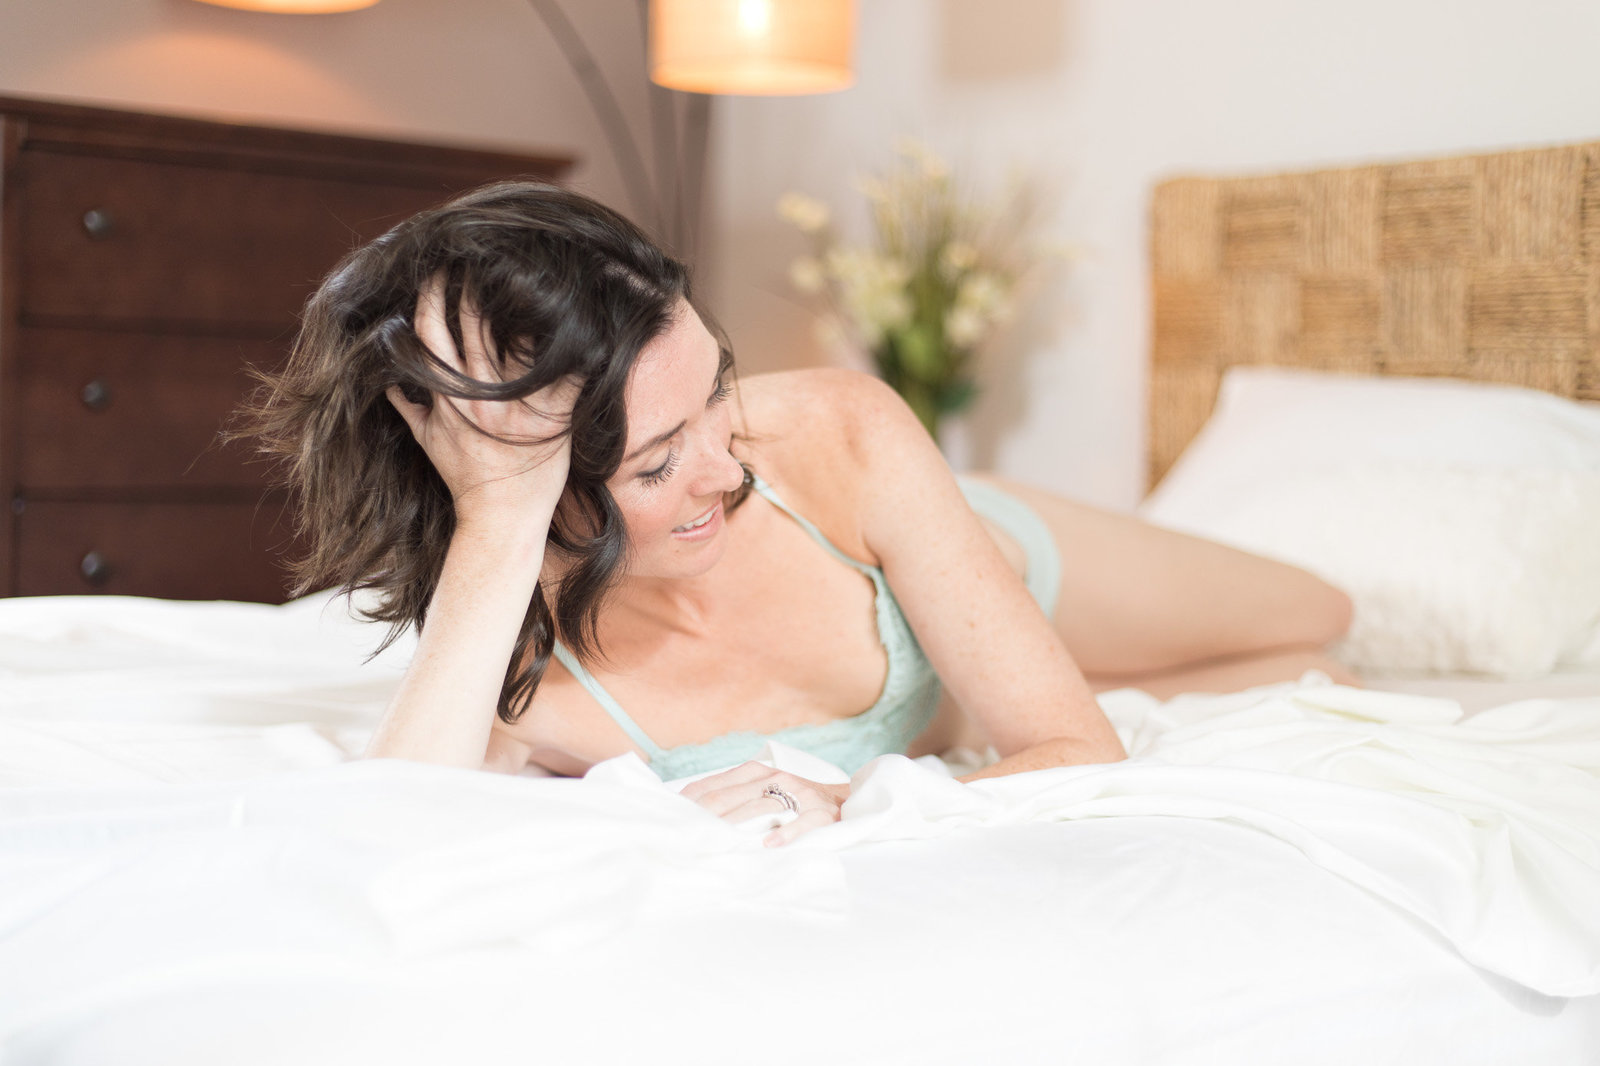 Light and Airy Boudoir Session